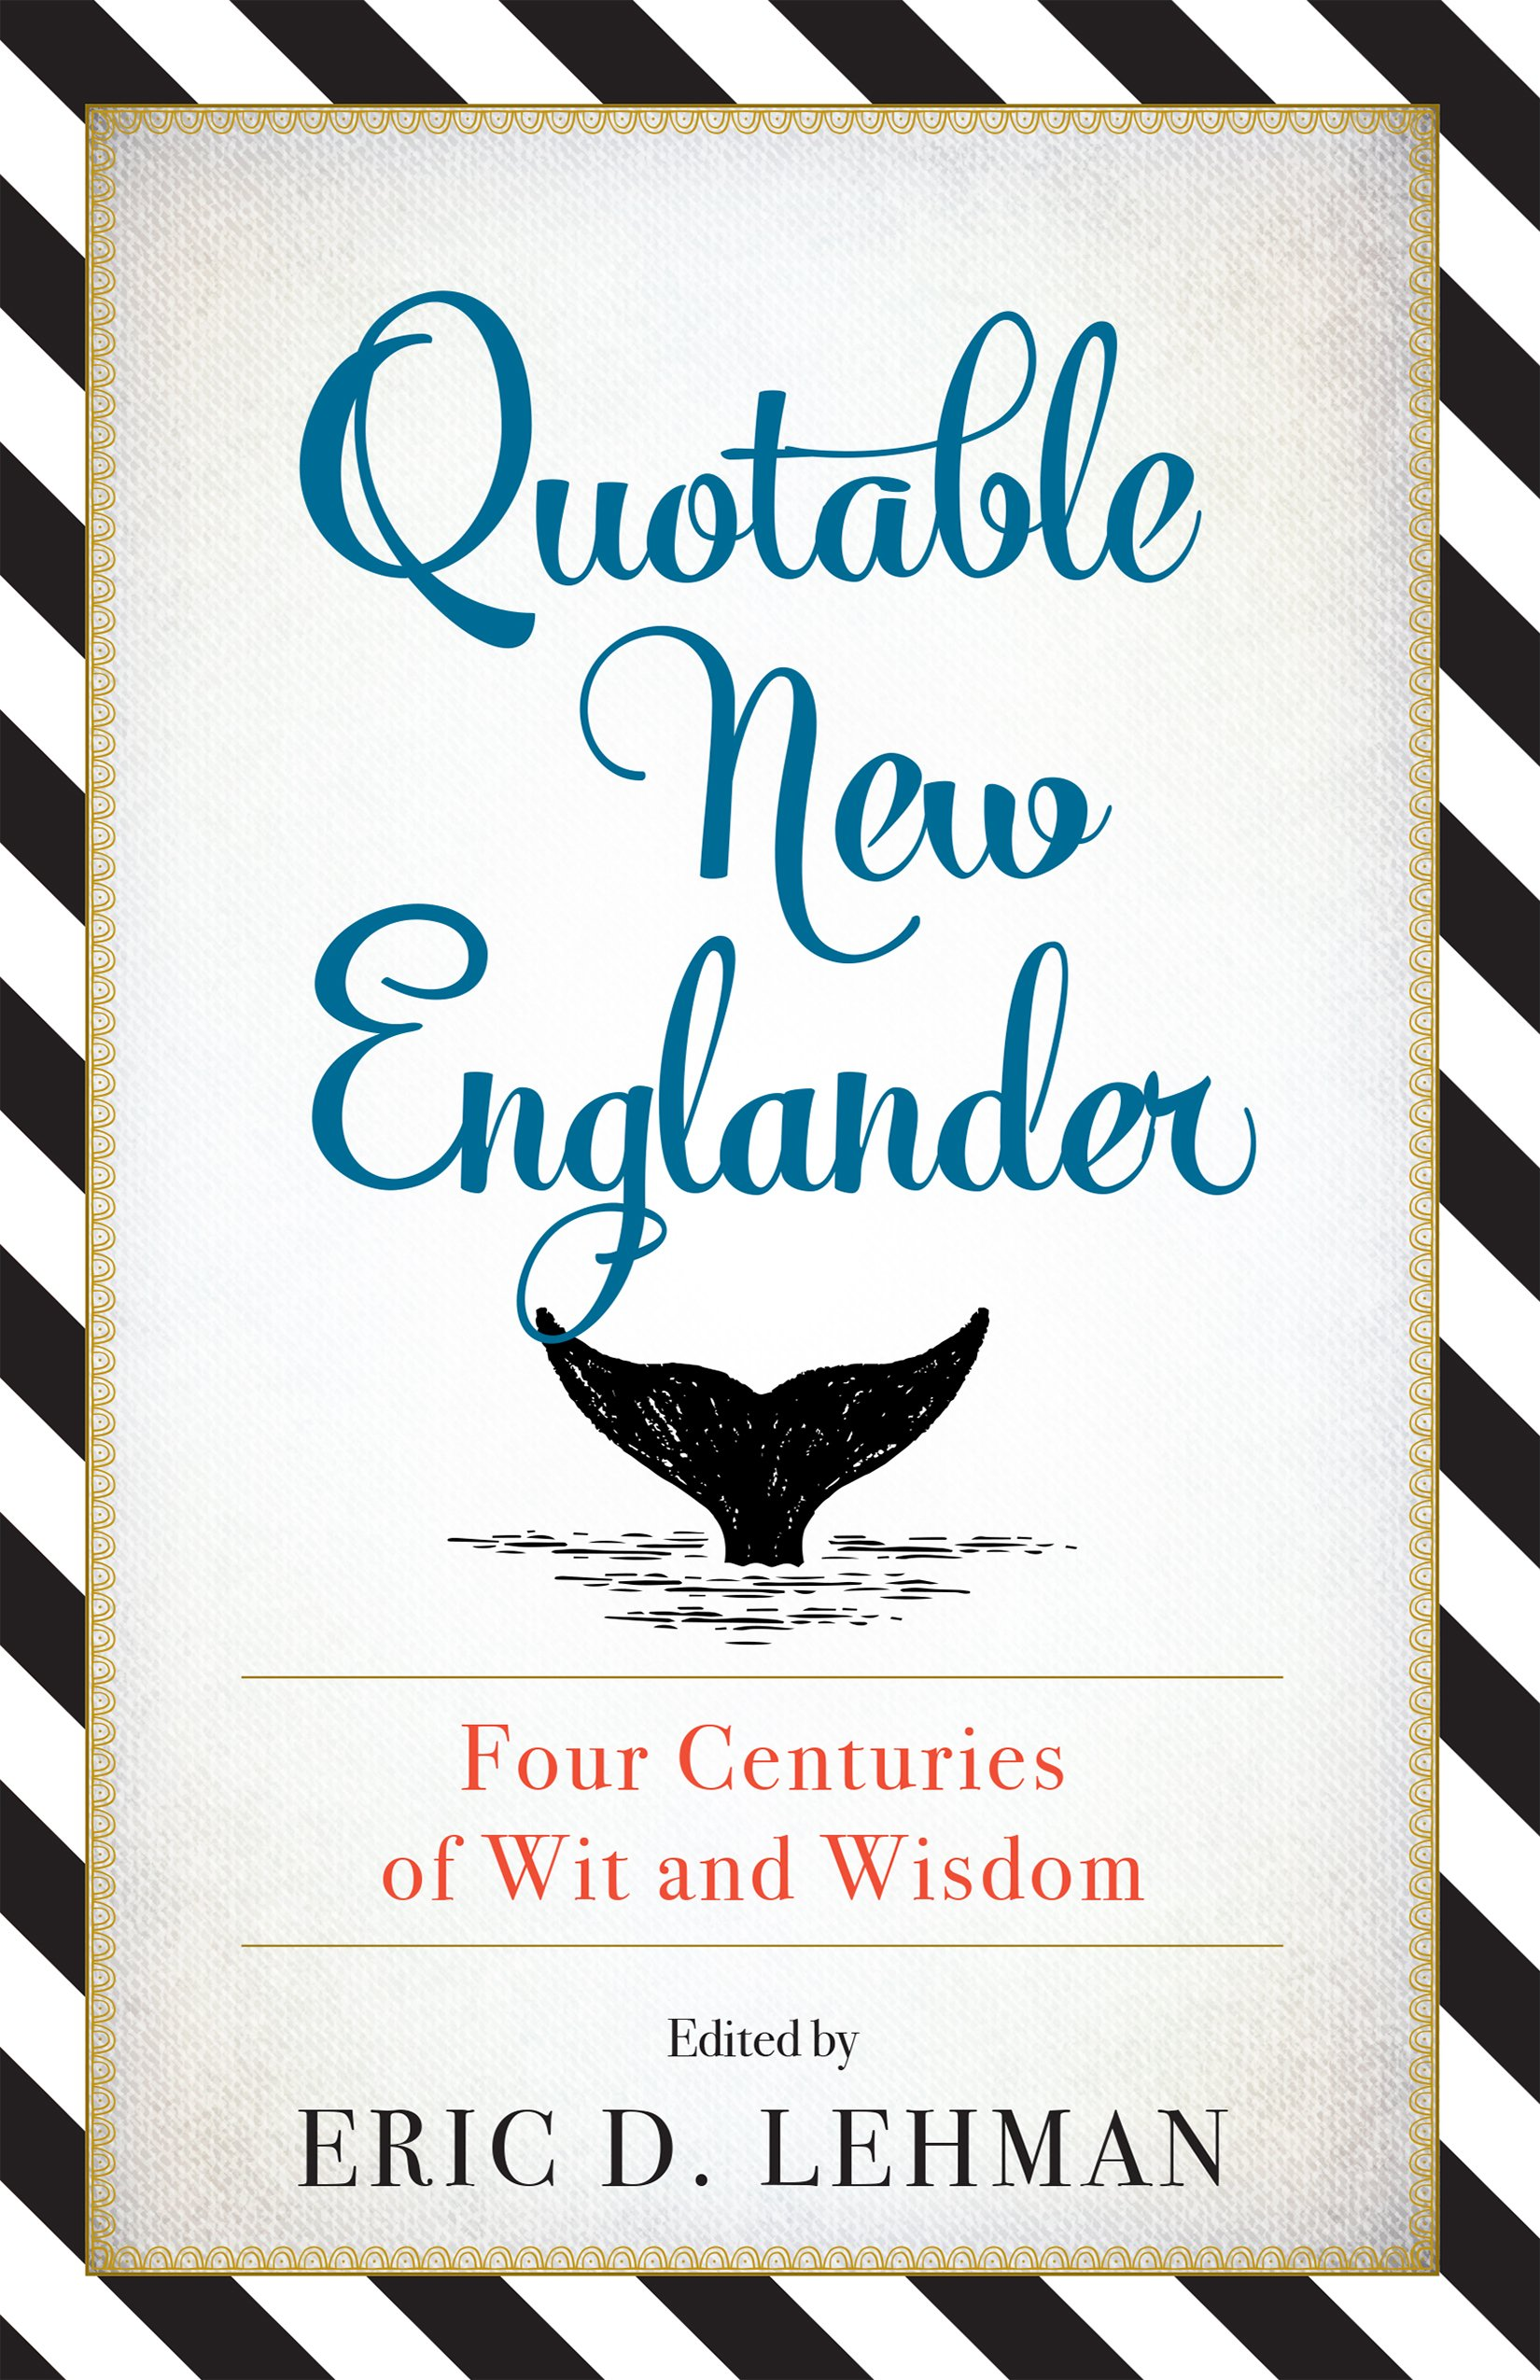 Find quotes from your favorite New Englanders! - From the Mayflower's landing to the age of the internet, New Englanders have always had something to say. Focusing on the unique qualities of both land and people, The Quotable New Englander showcases the linguistic insight of the region's native and adopted sons and daughters, from writers like Emily Dickinson to politicians like John F. Kennedy. Sometimes insightful, sometimes hilarious, these quotes will have readers smiling, laughing, and shaking their heads.